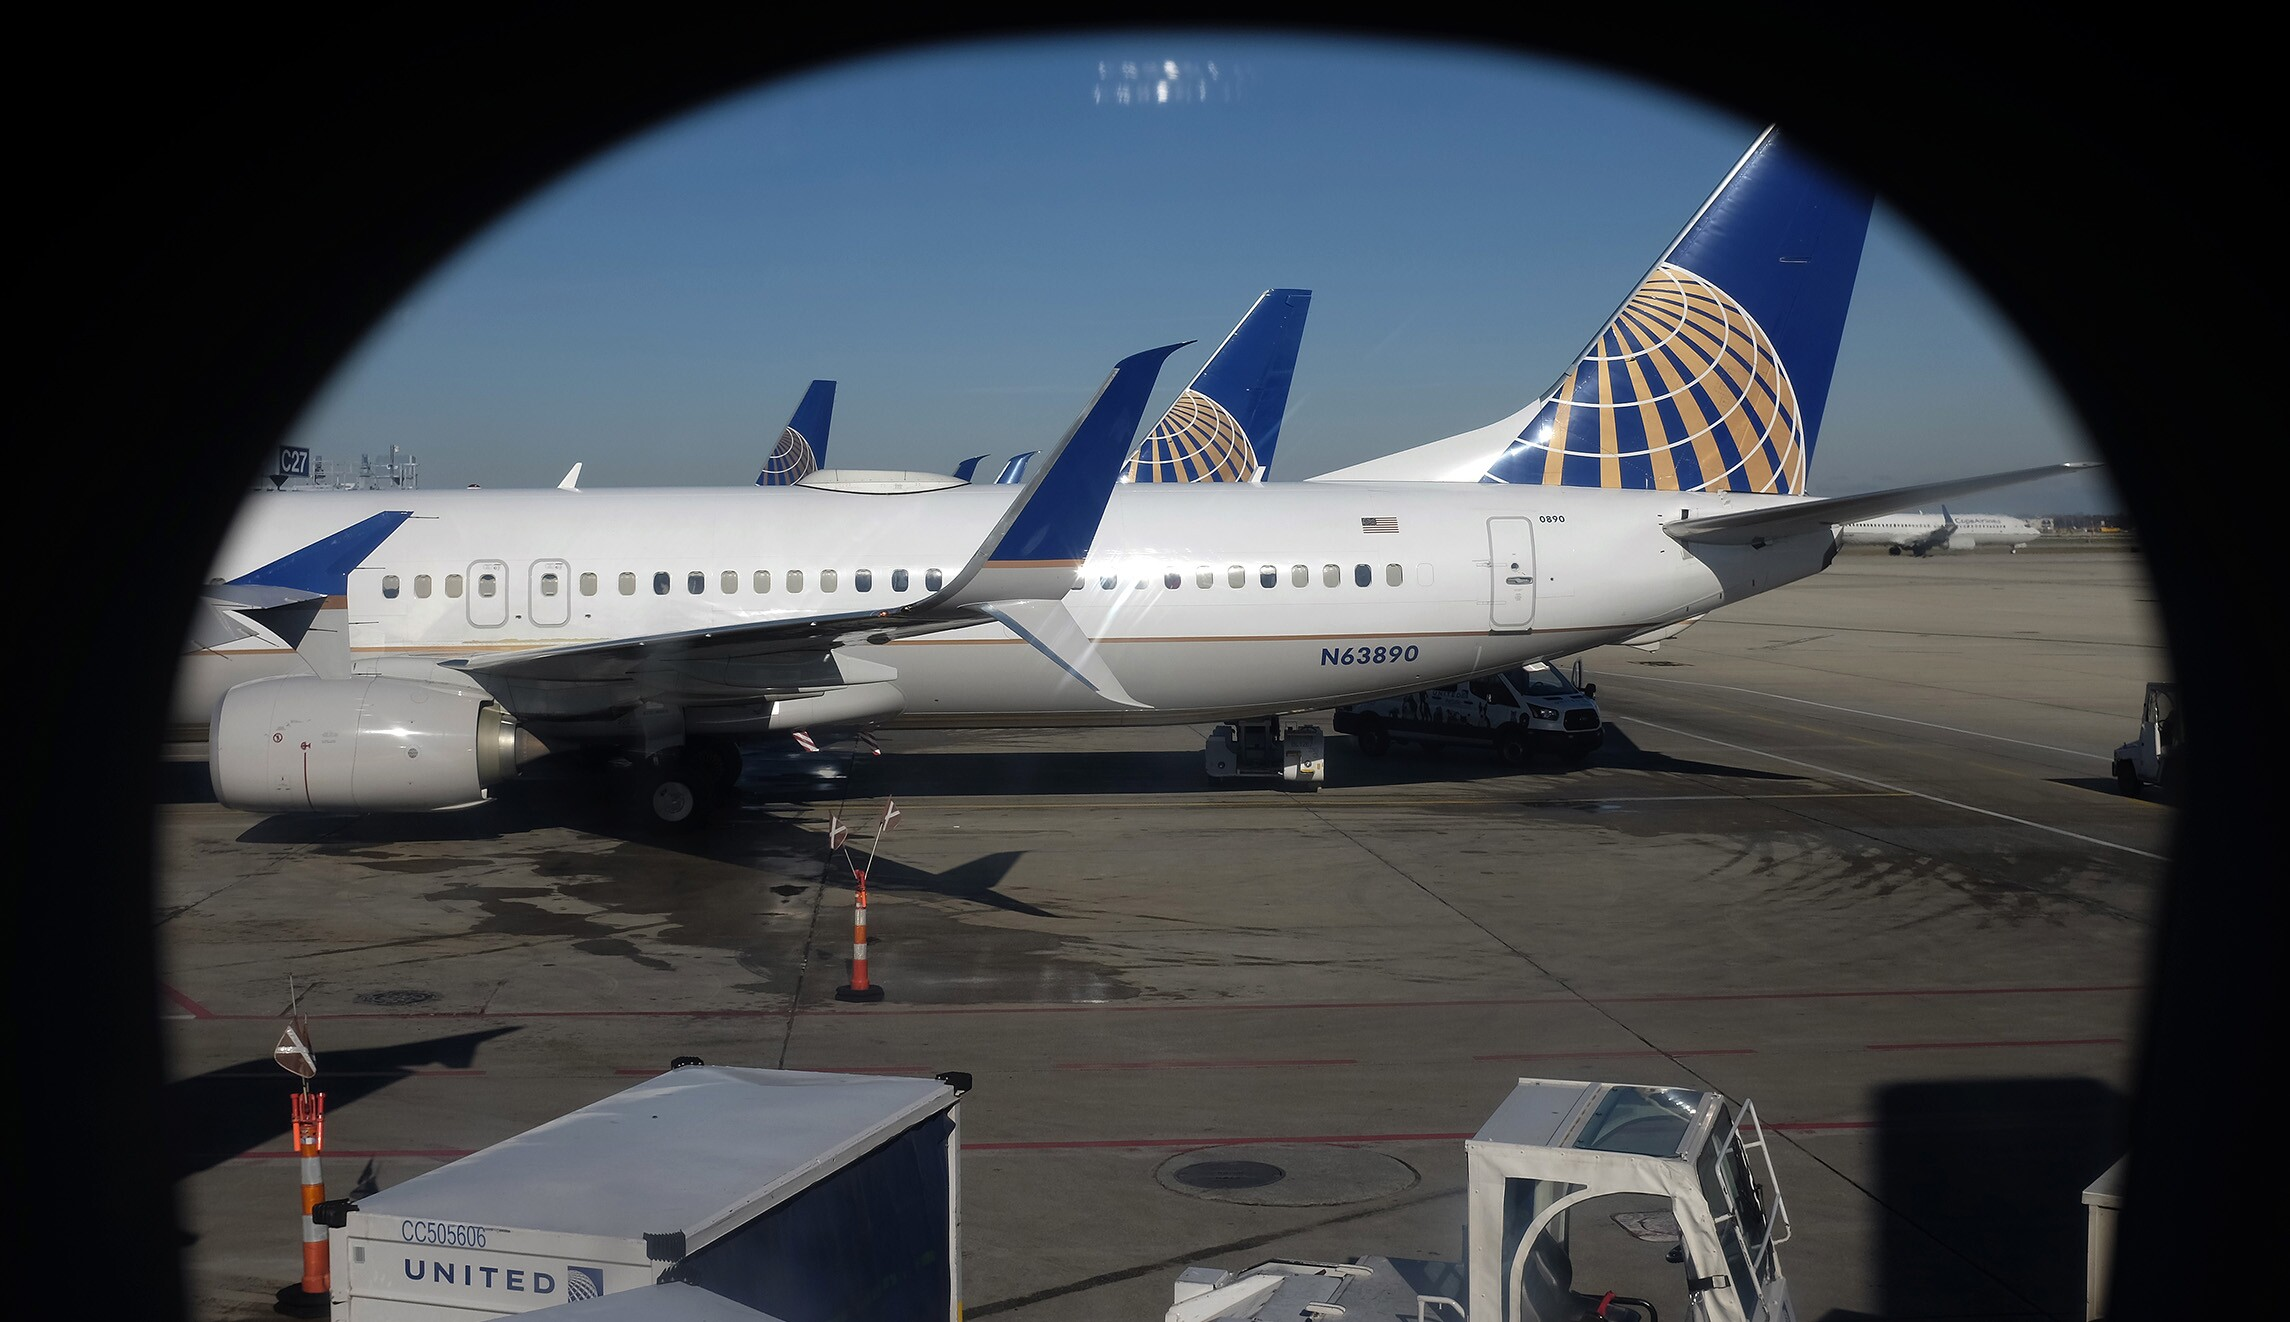 United flight from rome to chicago diverted to ireland after bomb threat publicscrutiny Choice Image